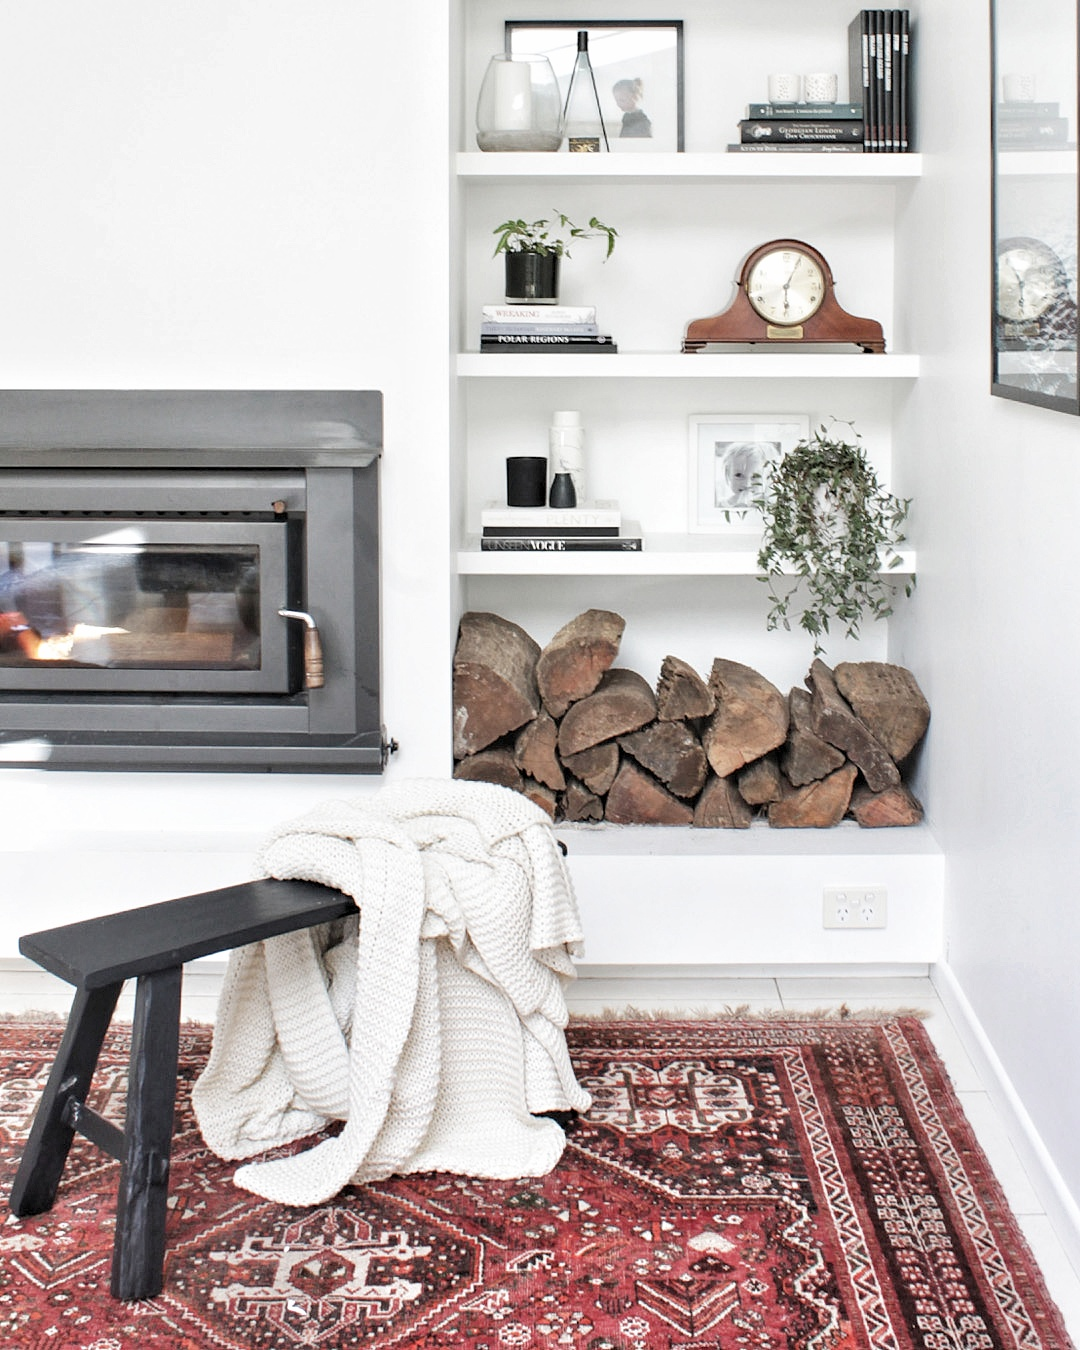 Fireplace and bookshelf